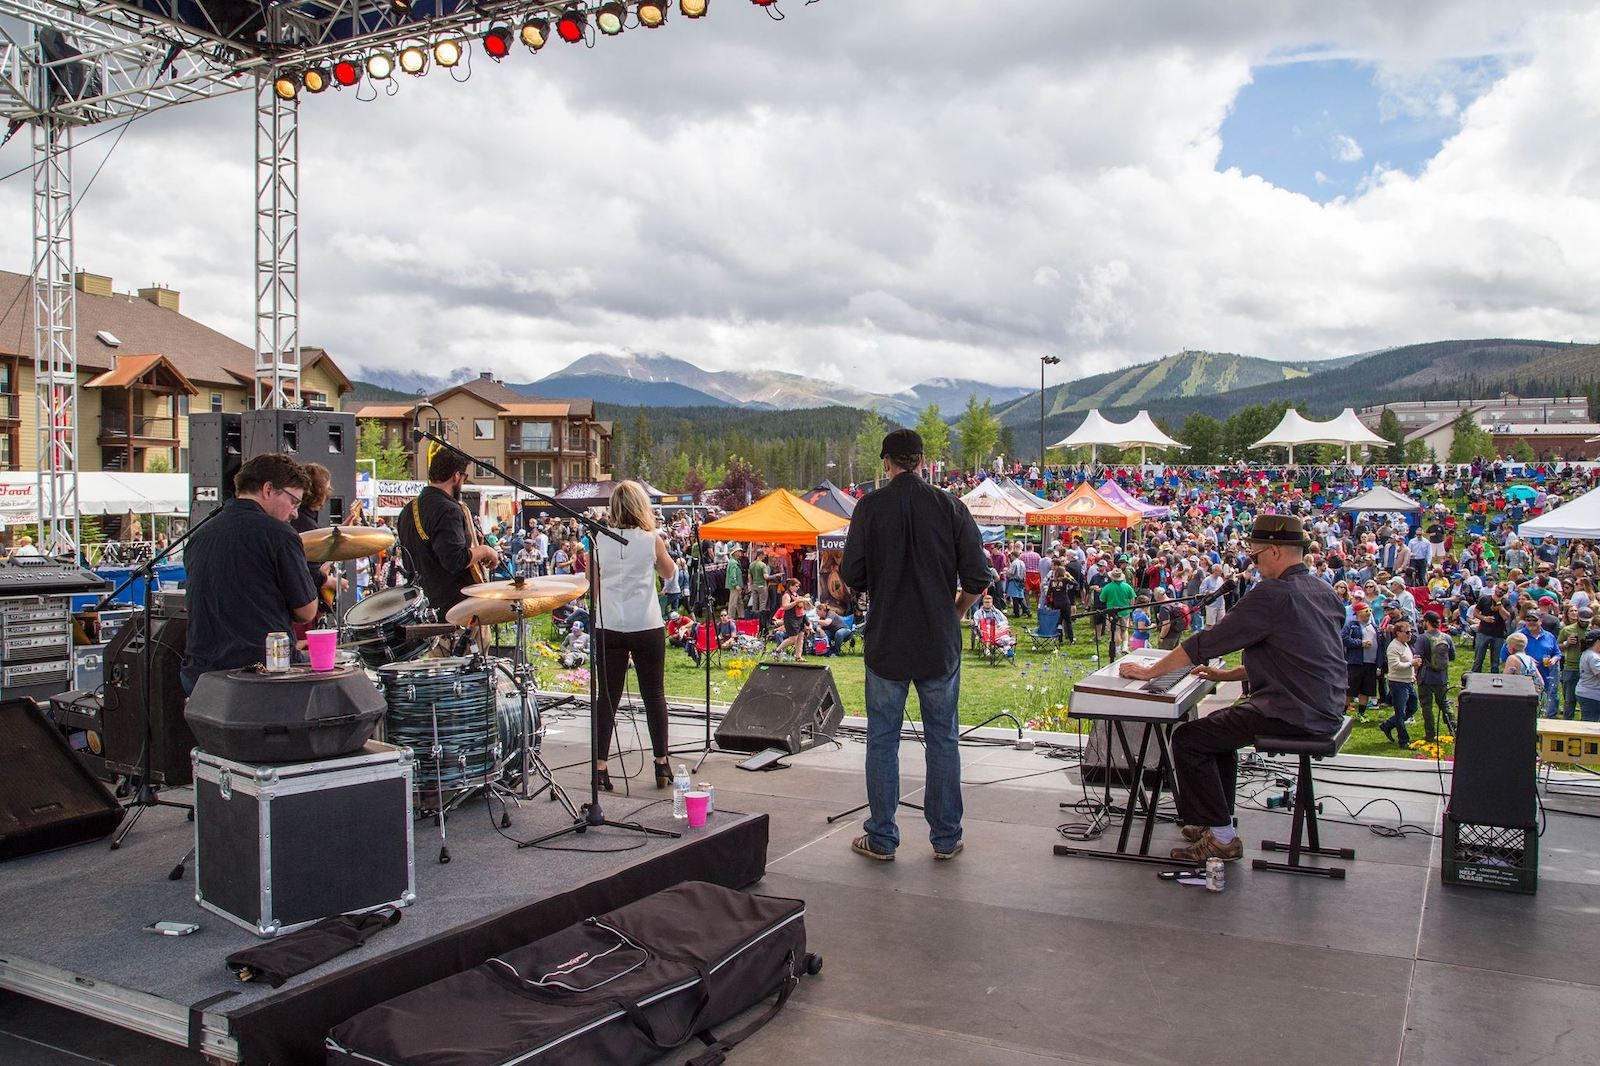 Image of the Winter Park Beer Festival Stage in Colorado